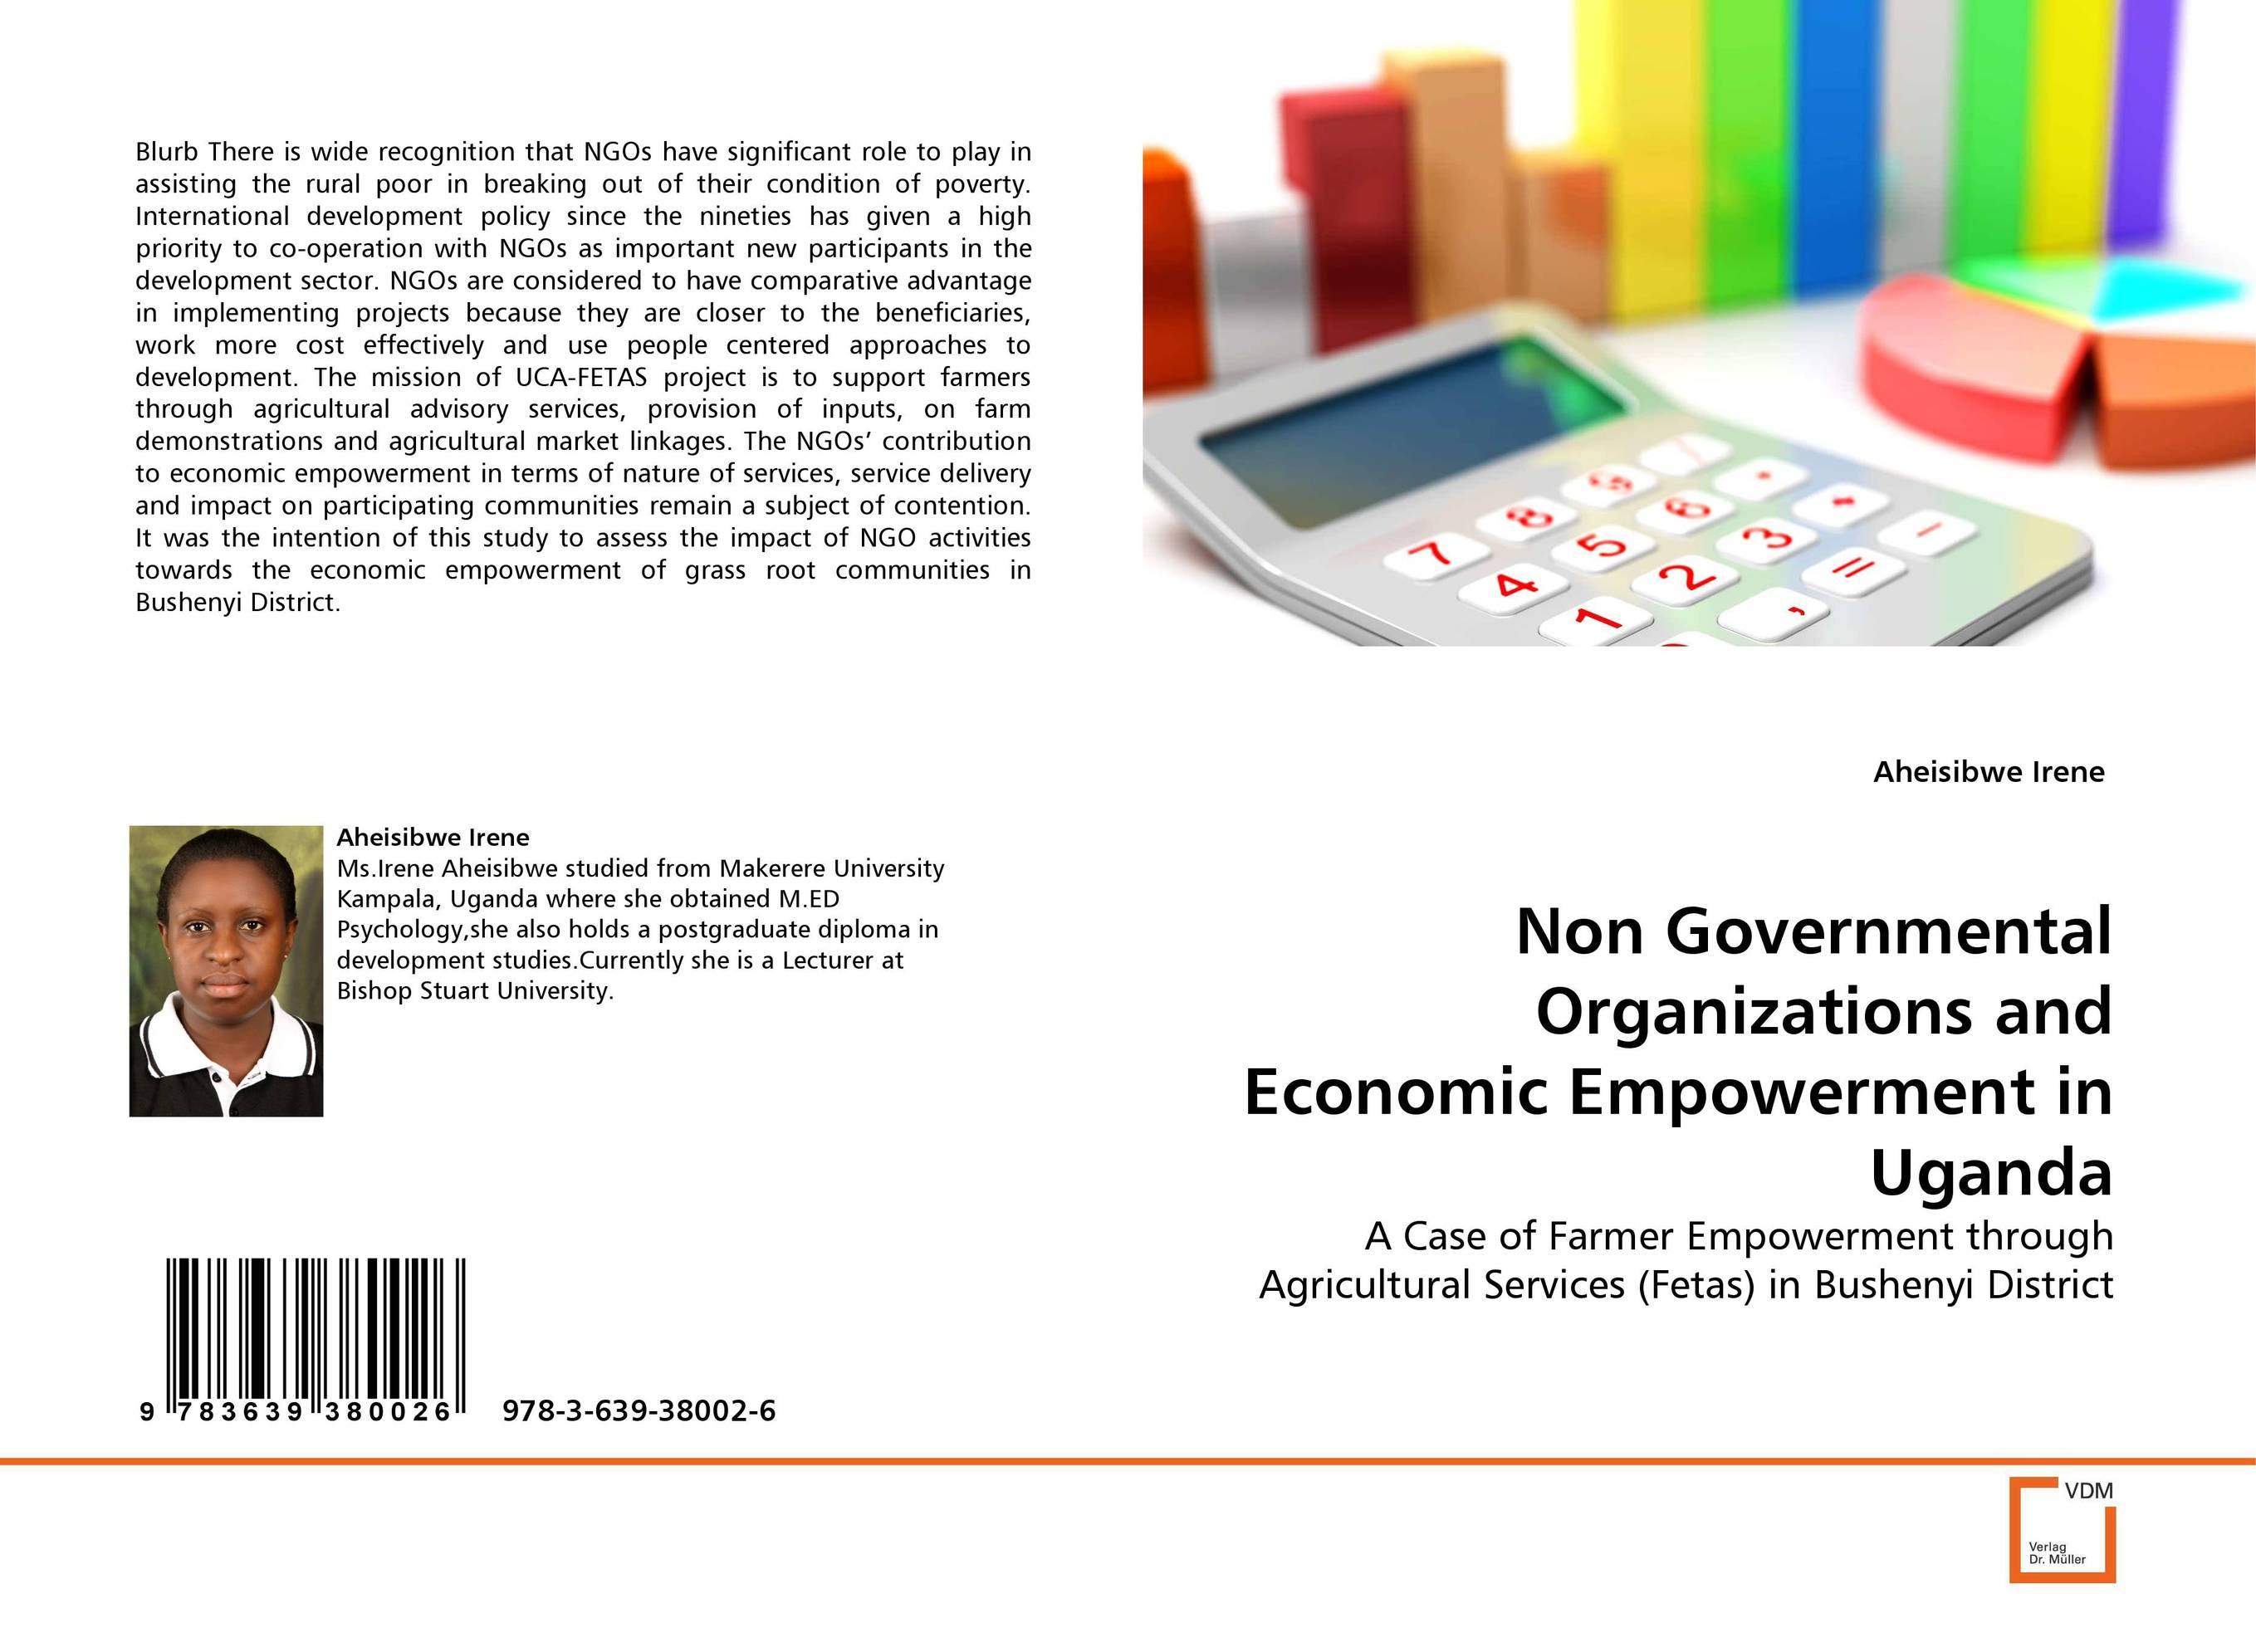 Non Governmental Organizations and Economic Empowerment in Uganda ngos